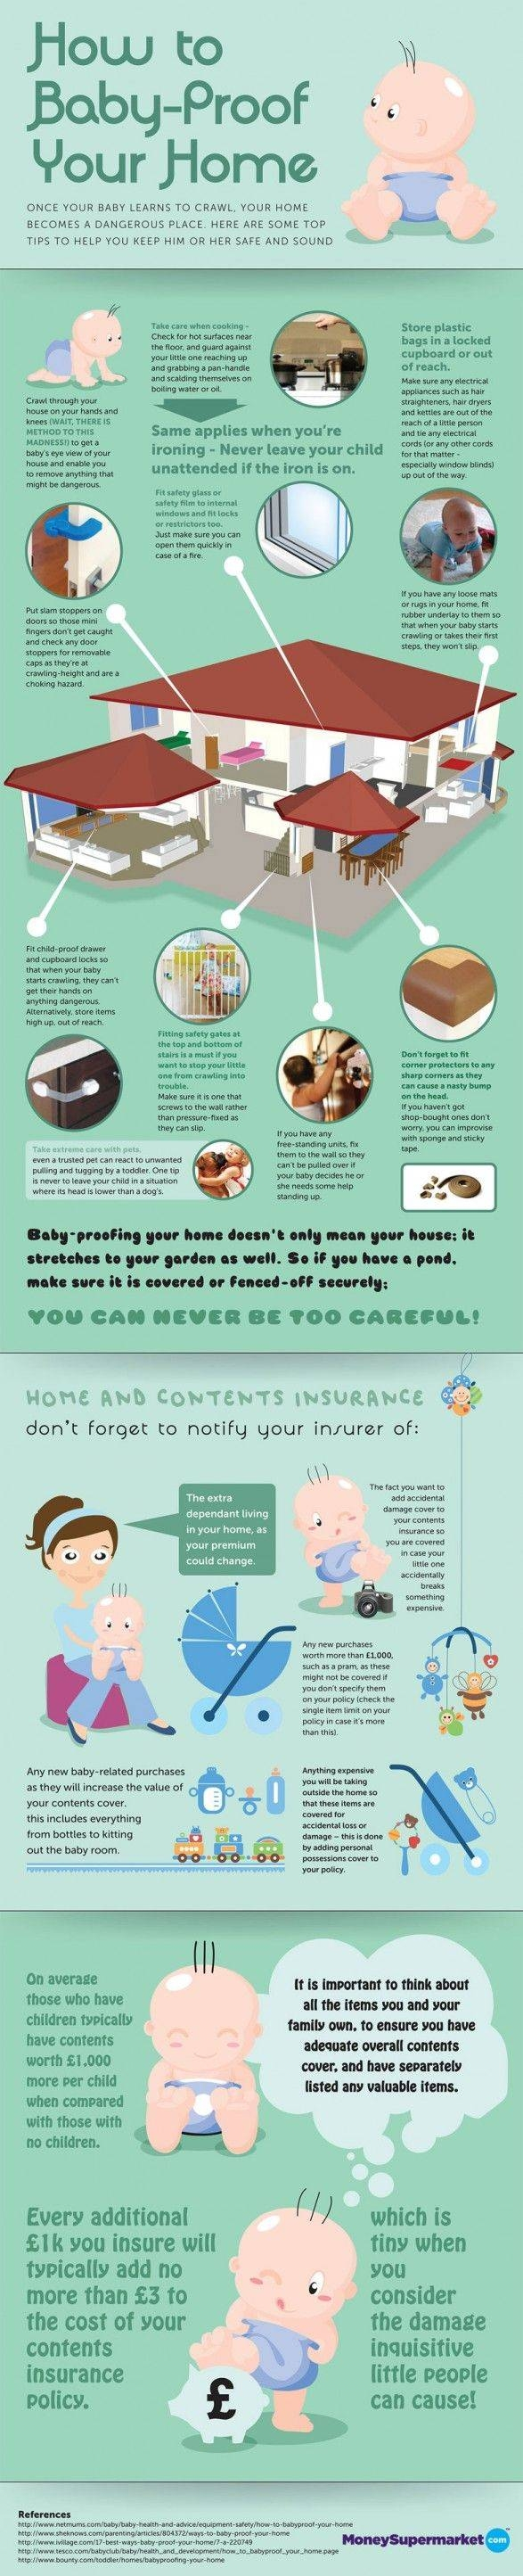 Top 25+ Best Childproofing Ideas On Pinterest   Child Proof, Diy Inside Baby Proof Coffee Tables Corners (View 23 of 30)